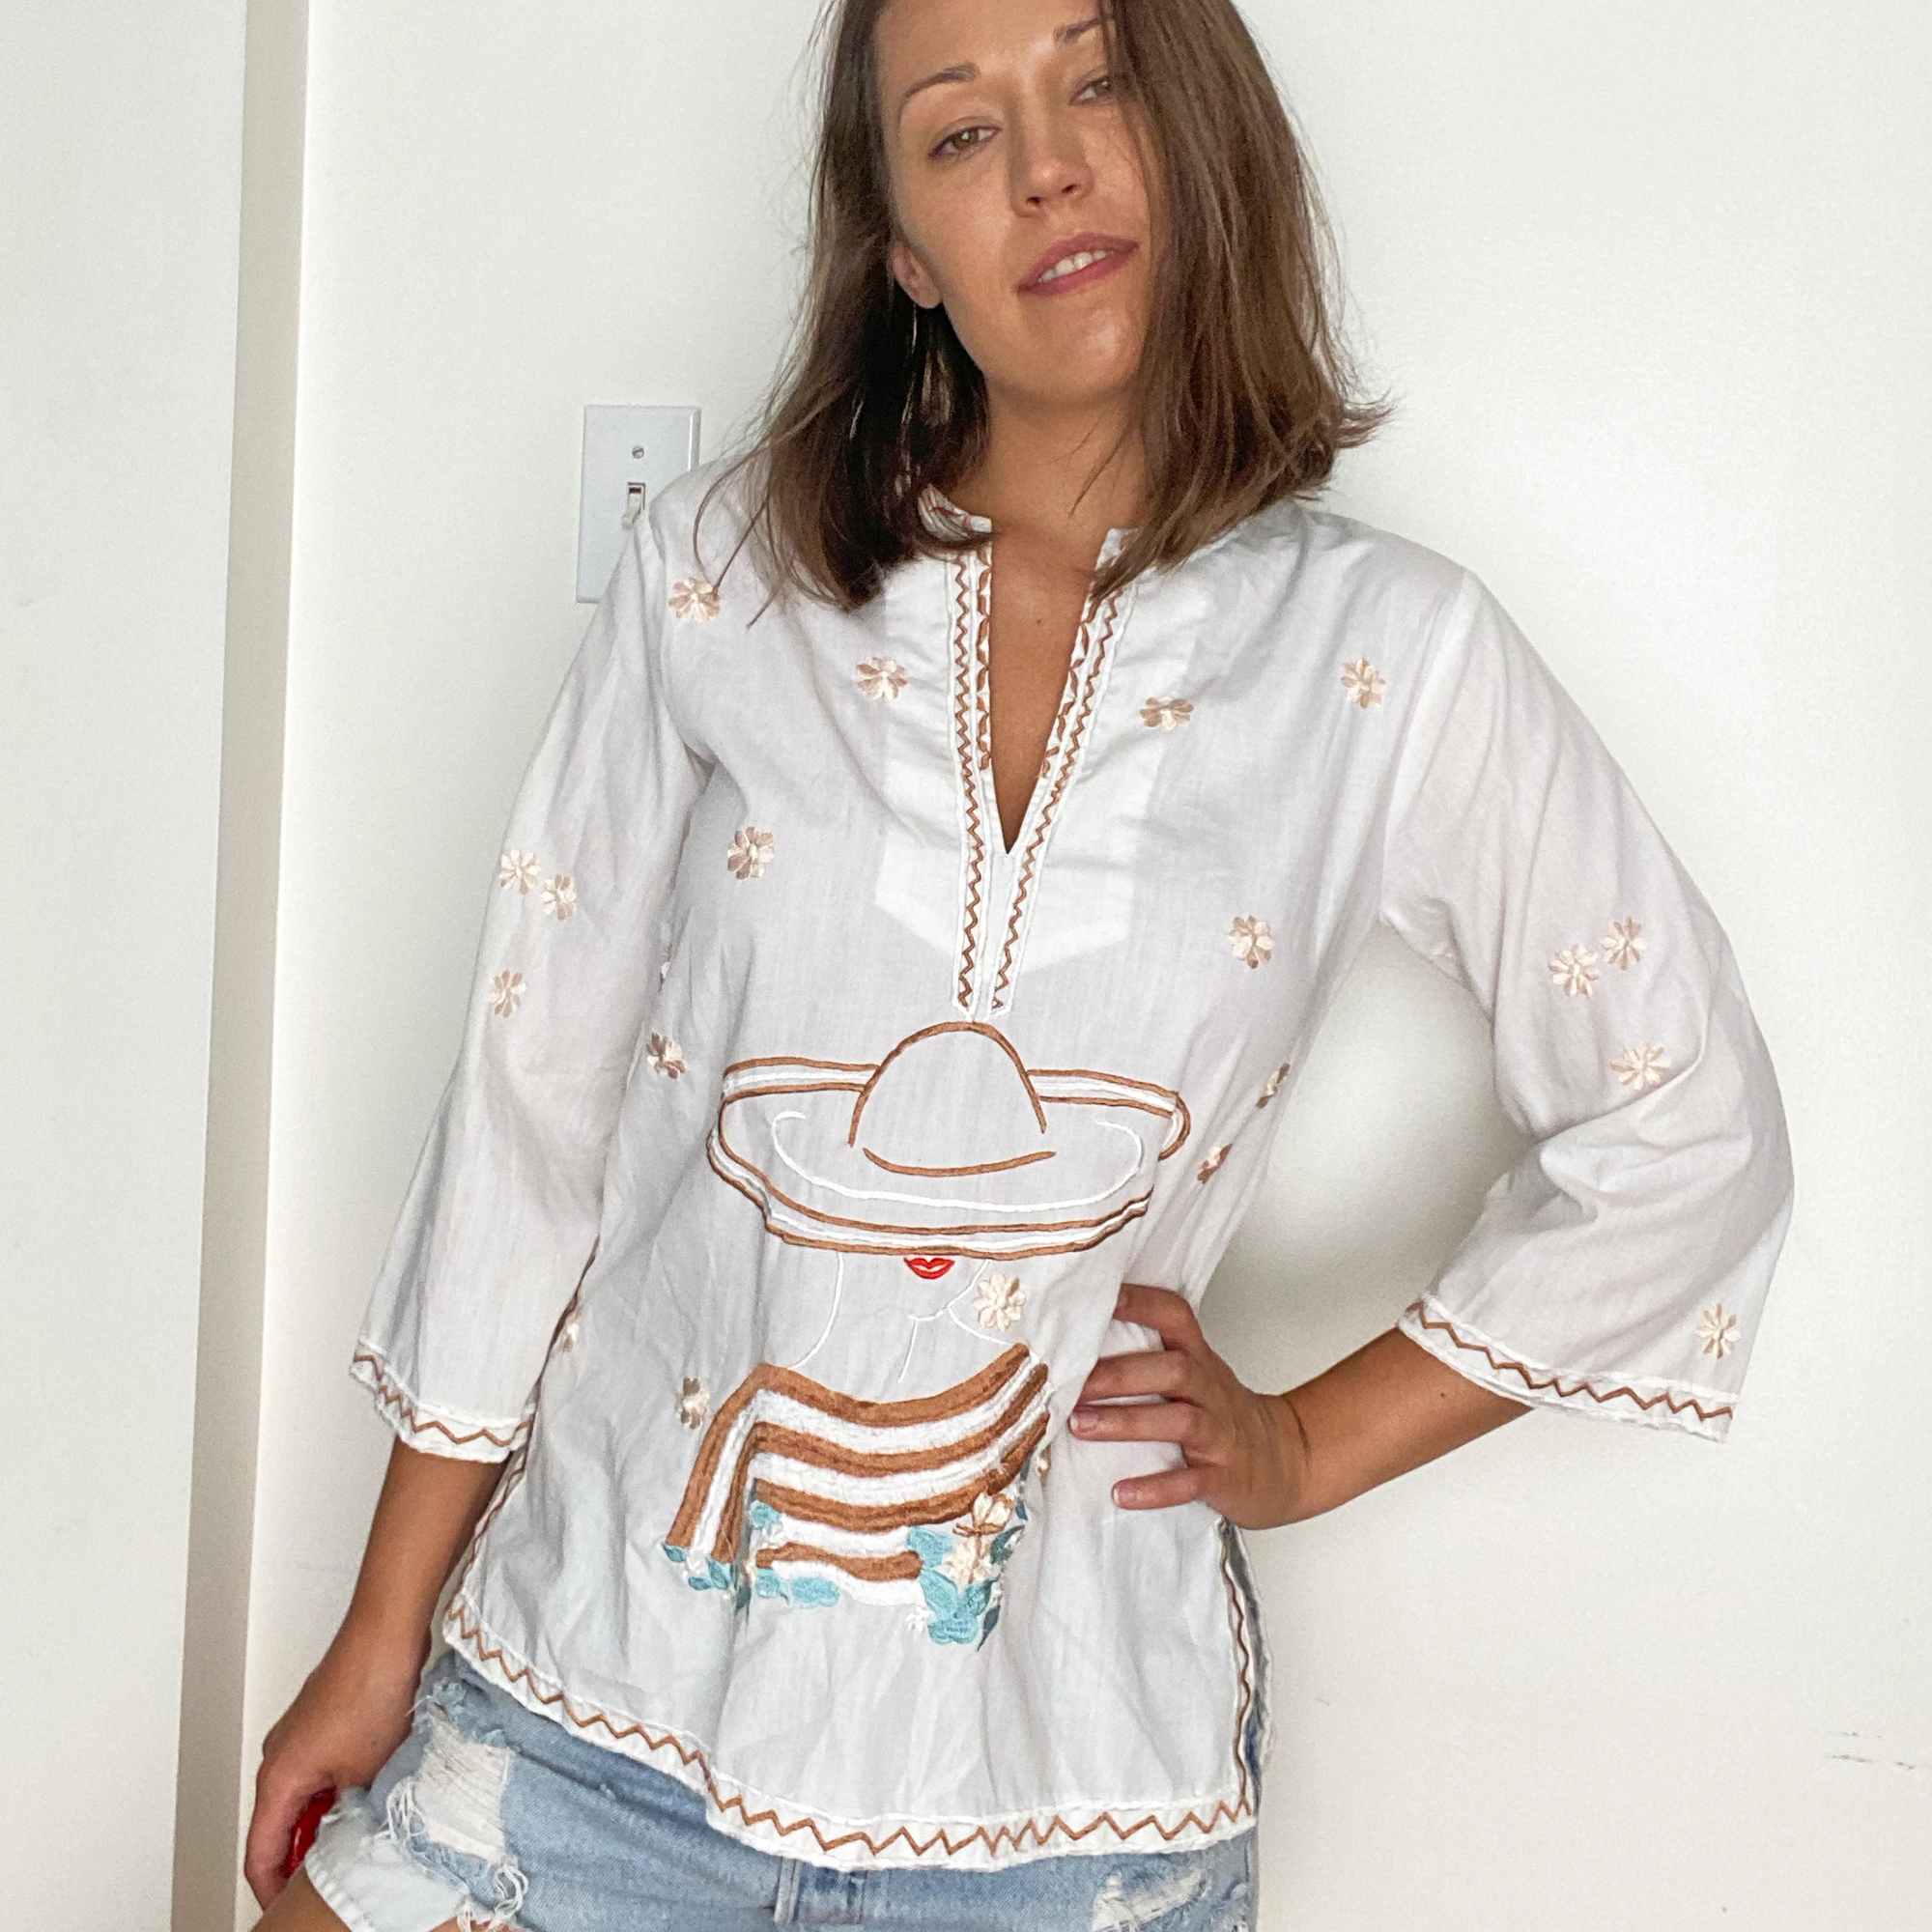 LA FEMME vintage 1970s woman with flowers embroidered top